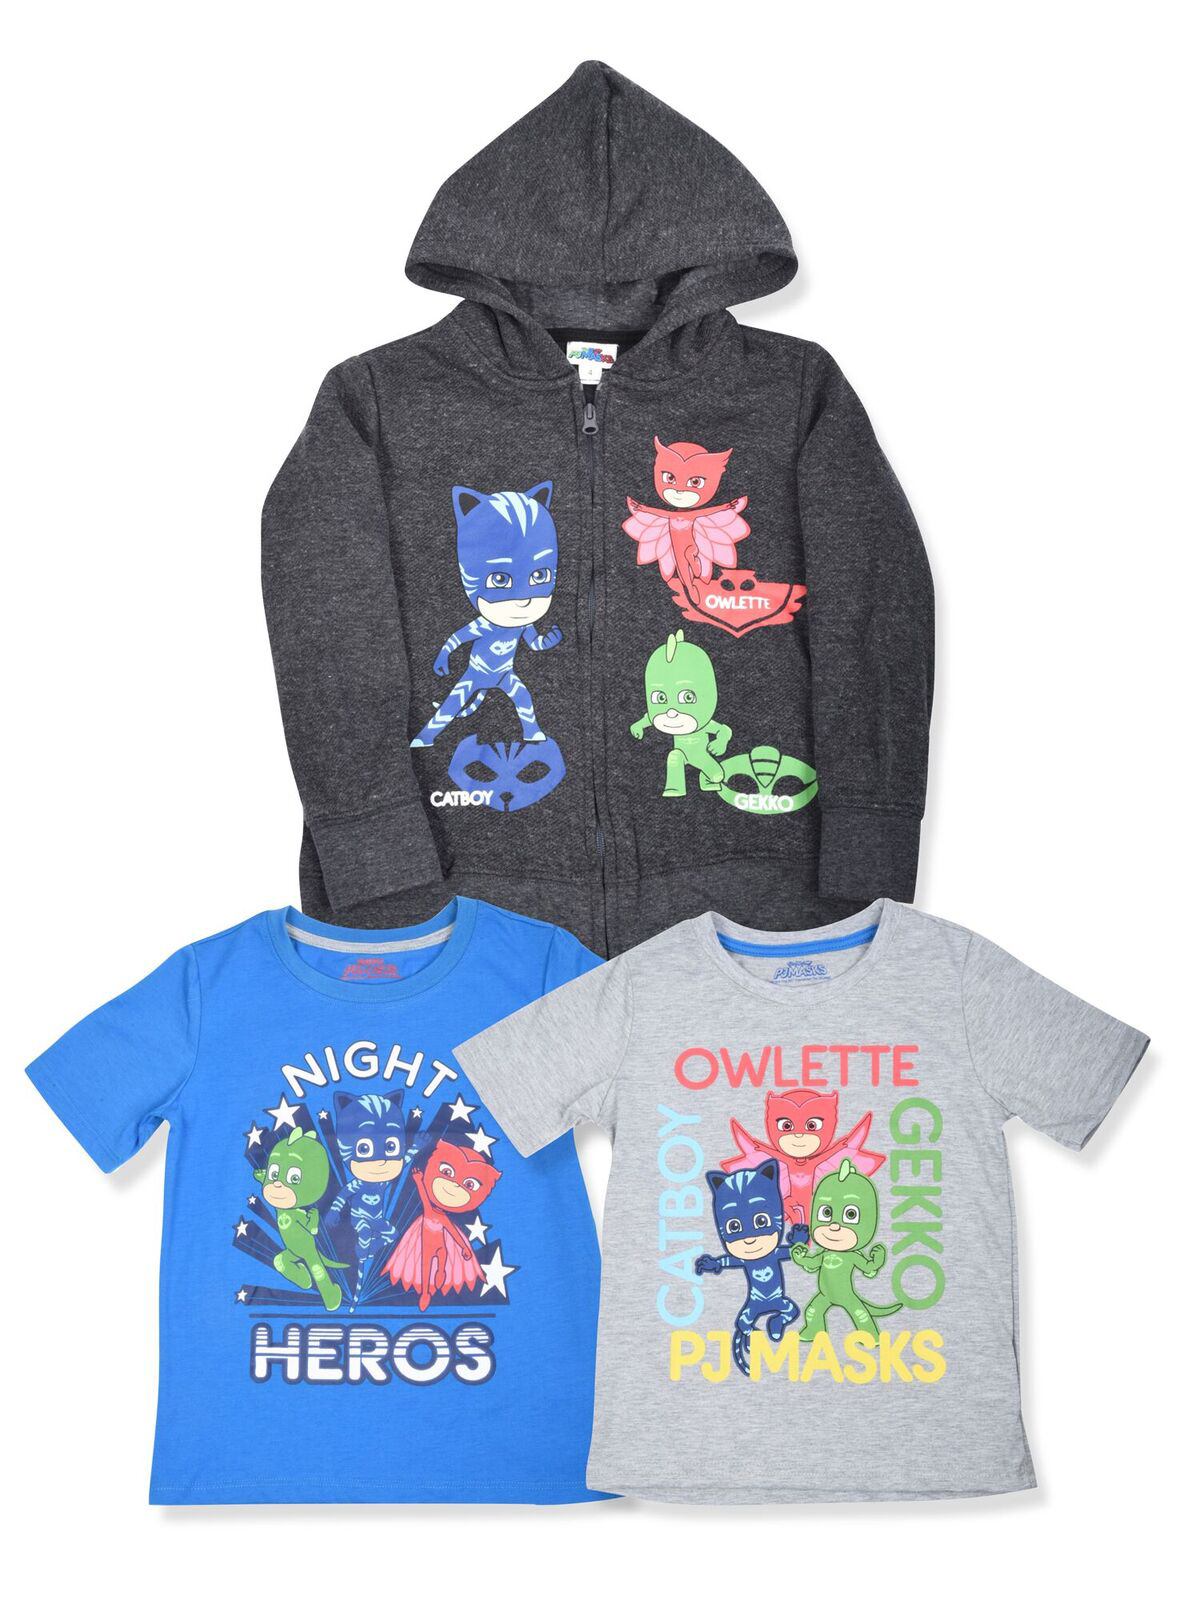 All Character Graphic Hoodie with Graphic Tees, 3-Piece Set (Little Boys)